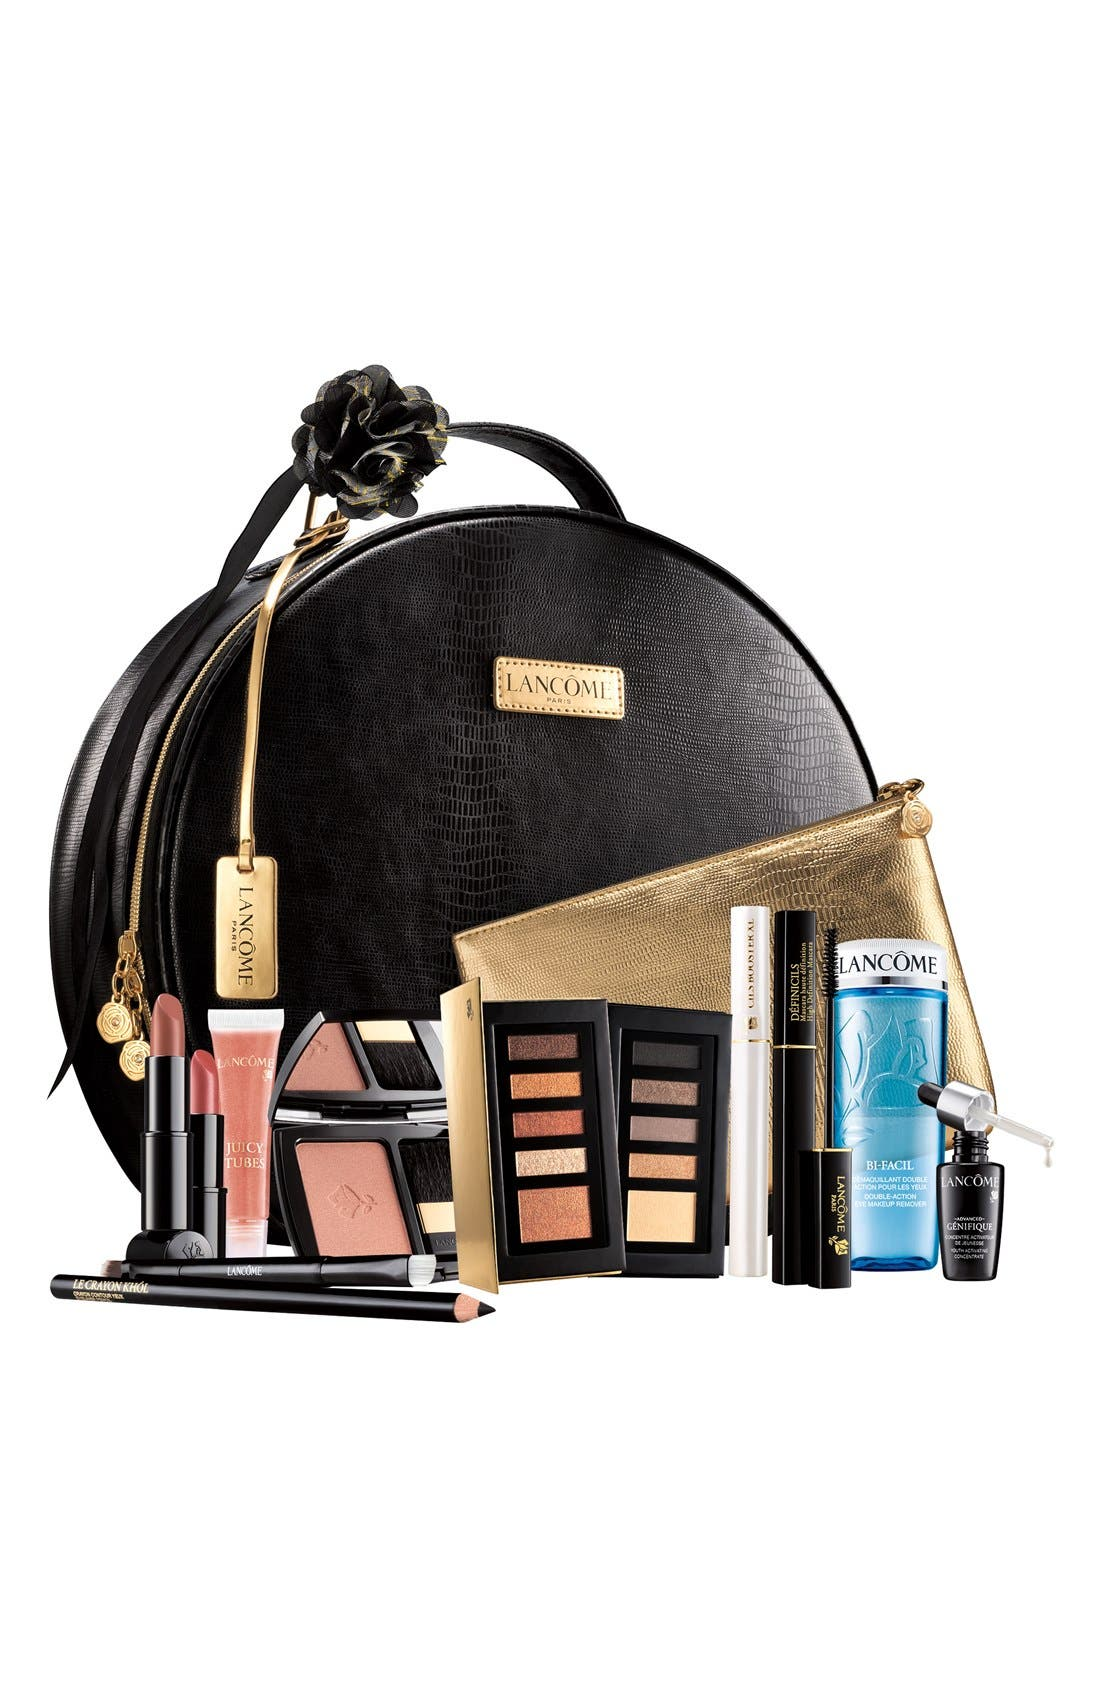 Alternate Image 1 Selected - Lancôme 'Beauty Box - Warm' Purchase with Purchase (Limited Edition) ($308 Value)